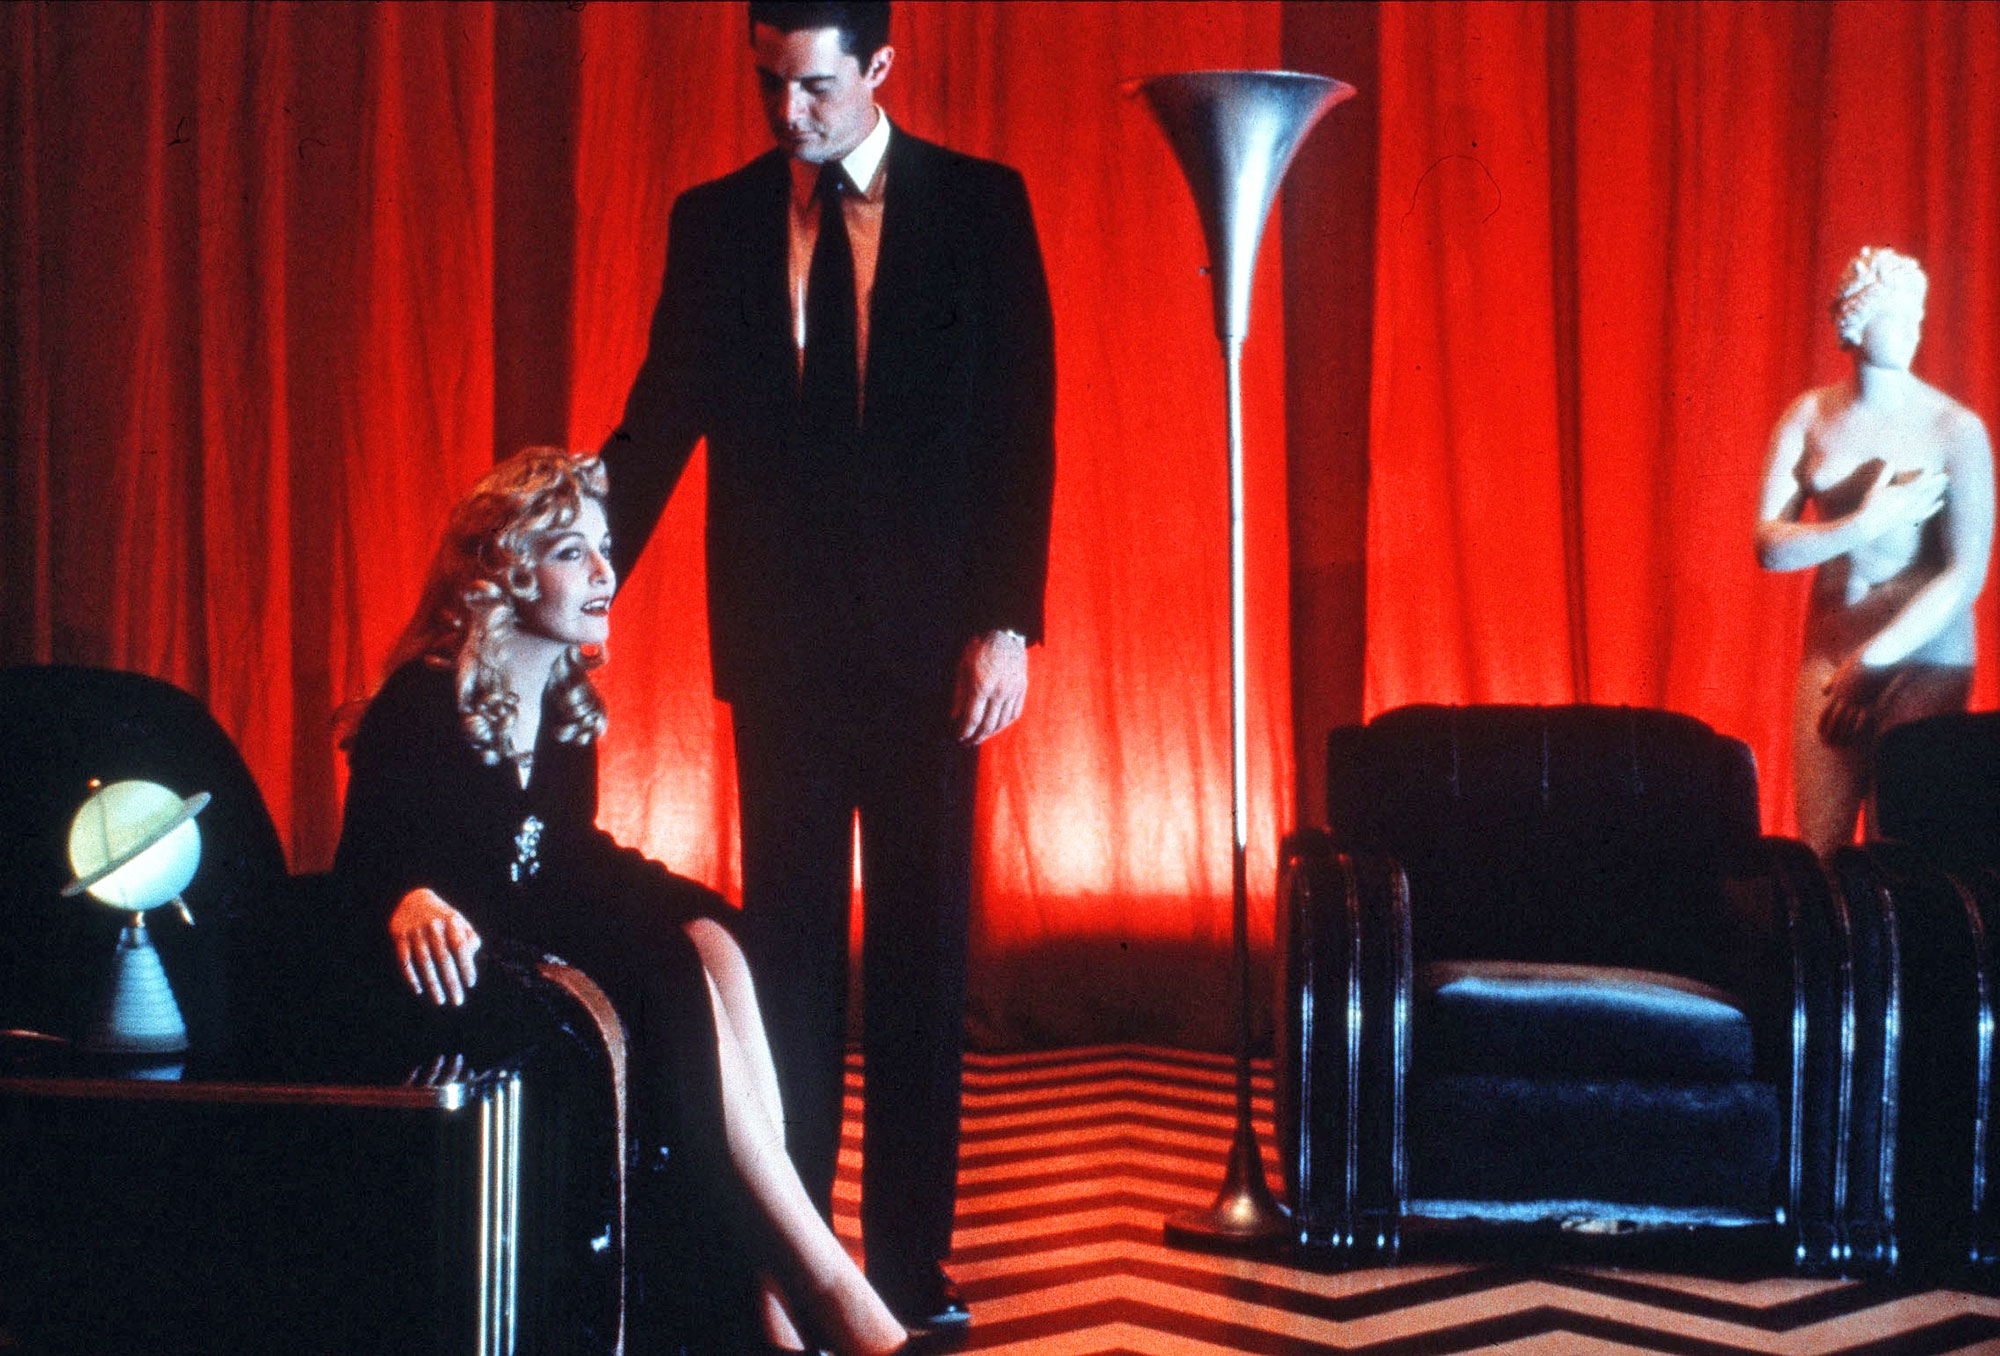 THE TWIN PEAKS LEGACY